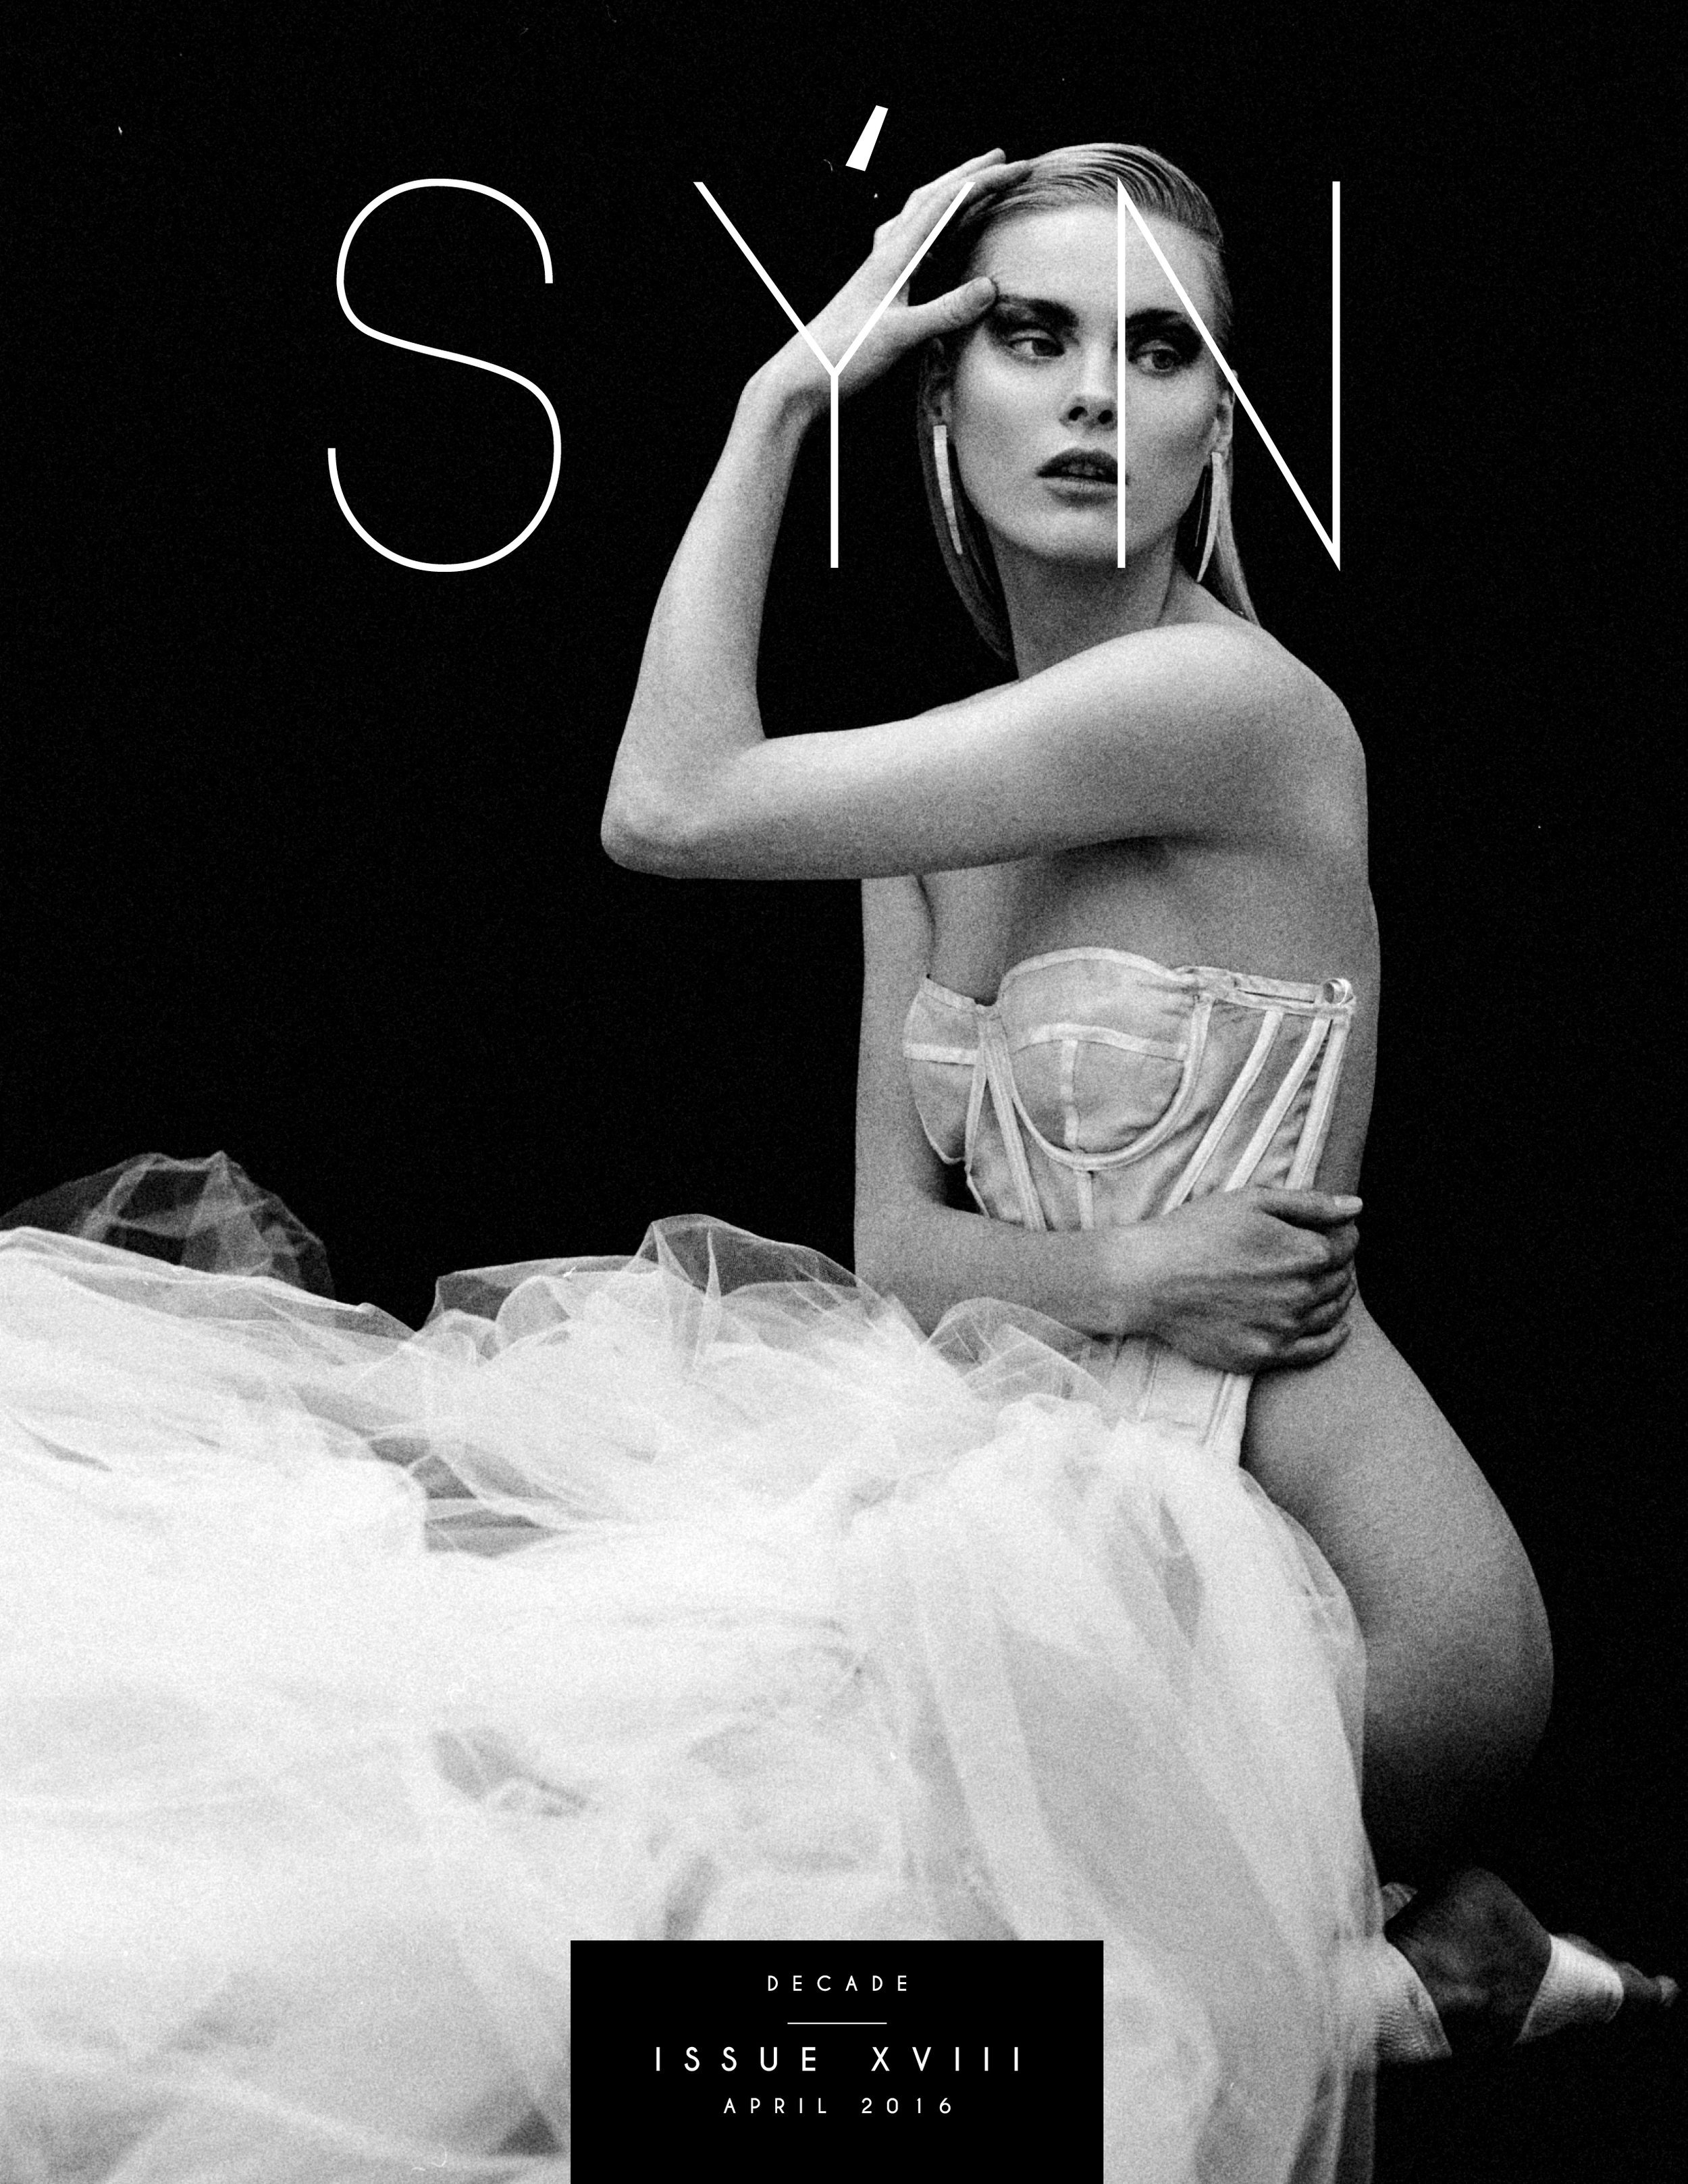 """COVER STORY """"WHITE SWAN"""" FOR SÝN MAGAZINE DECADE ISSUE"""